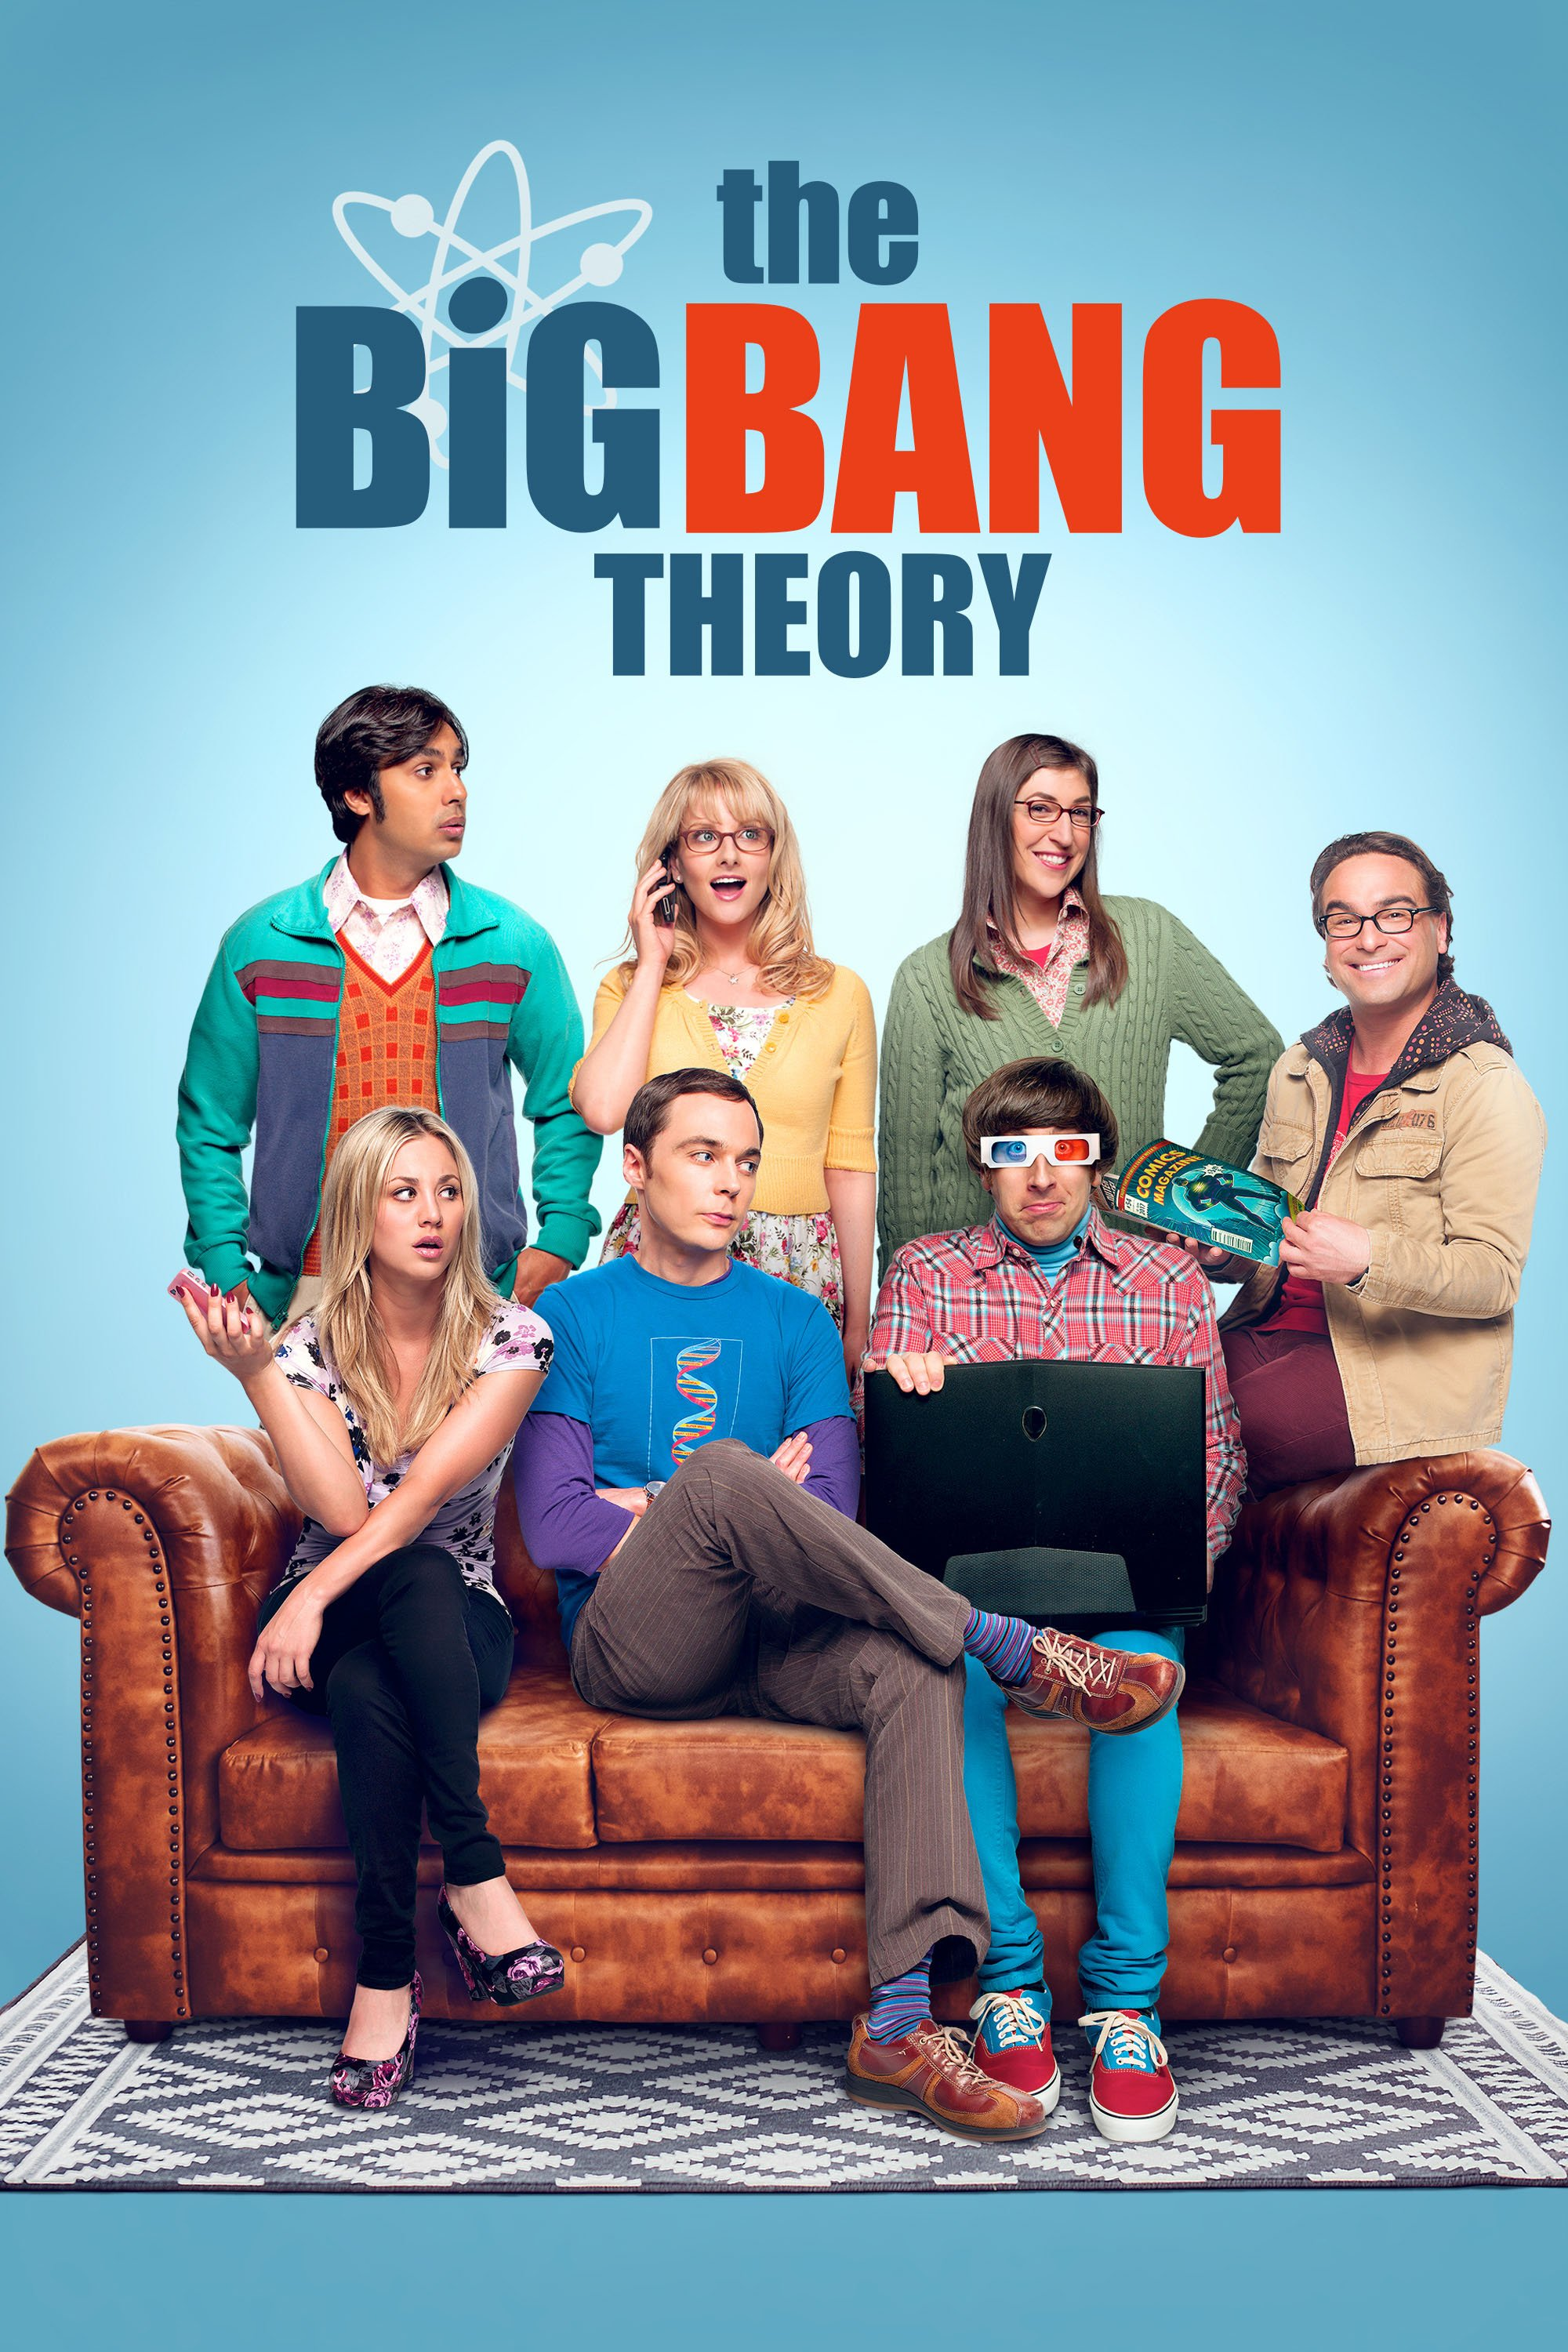 The Big Bang Theory  Source: Warner Bros.